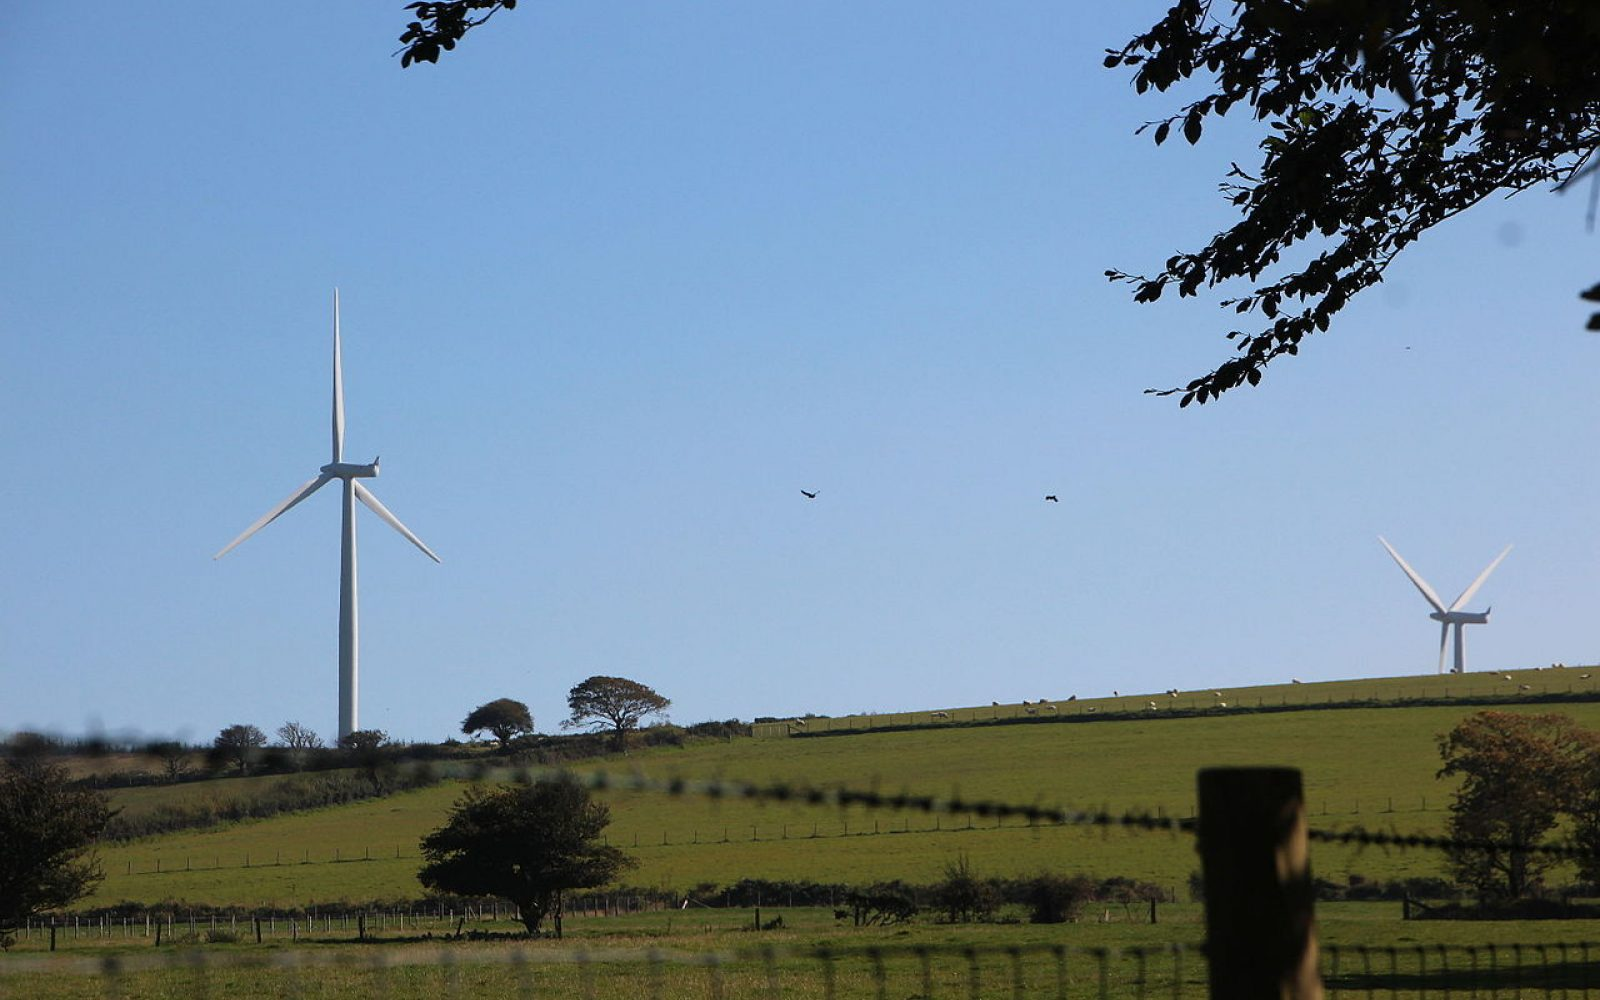 Pencader Wind Farm in Carmarthenshire, Wales. Image: Takver (WikiCommons).